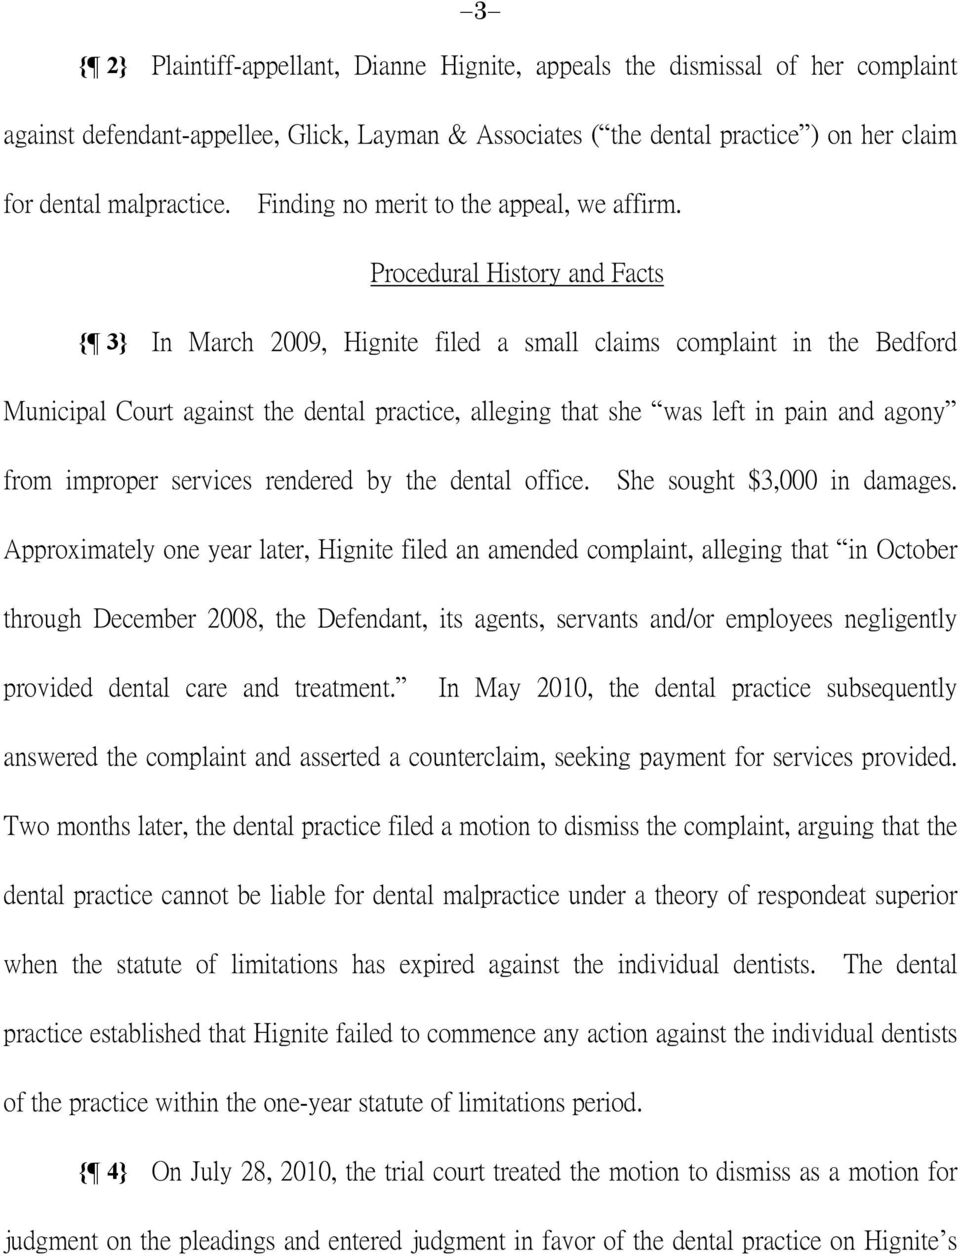 Procedural History and Facts { 3} In March 2009, Hignite filed a small claims complaint in the Bedford Municipal Court against the dental practice, alleging that she was left in pain and agony from